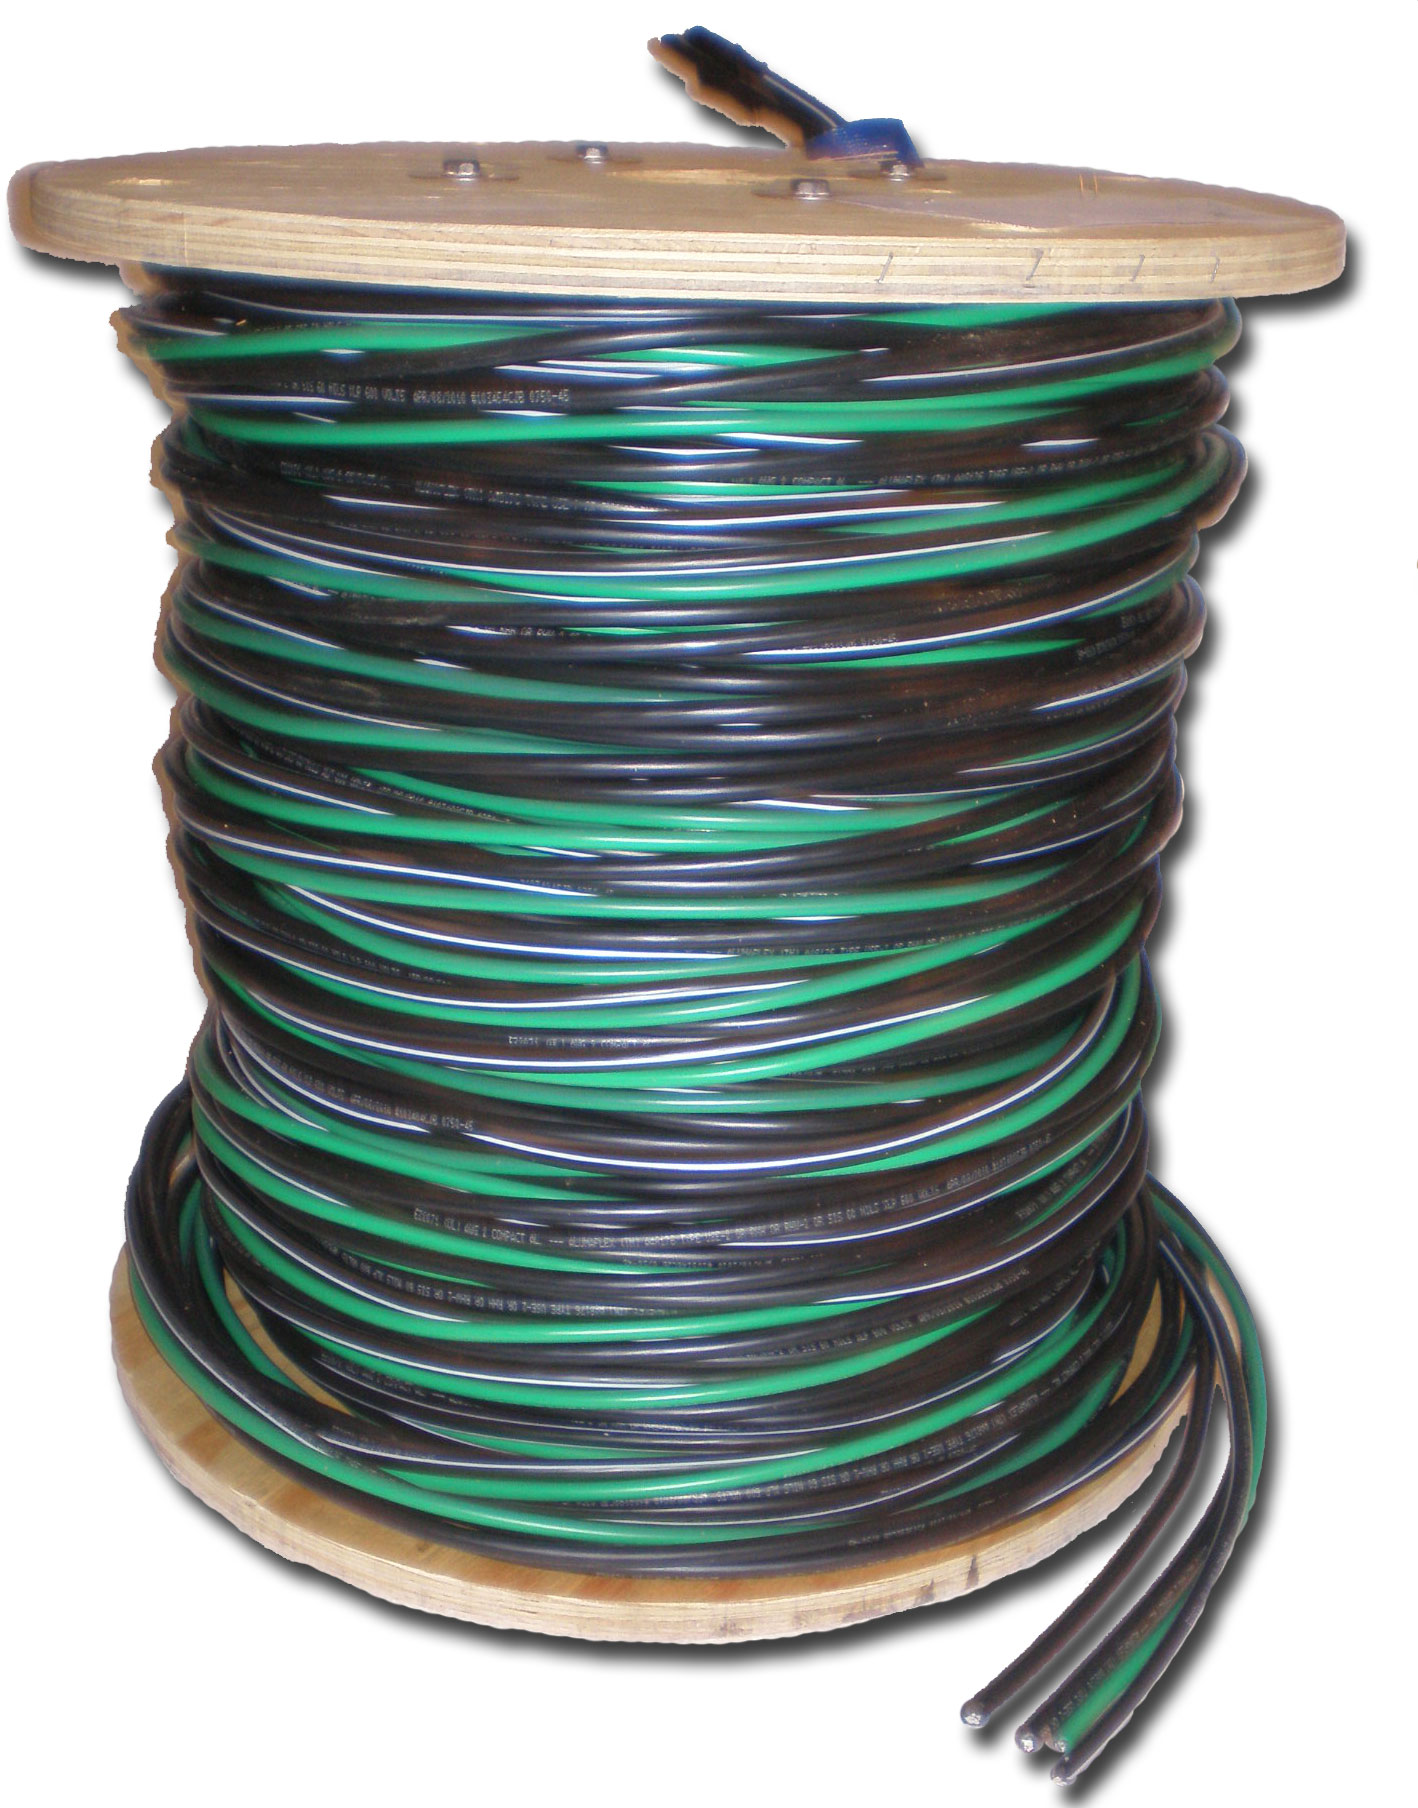 200 AMP Mobile Feed Wire 4/0 4/0 4/0 2/0 per ft. – Sedco Pier